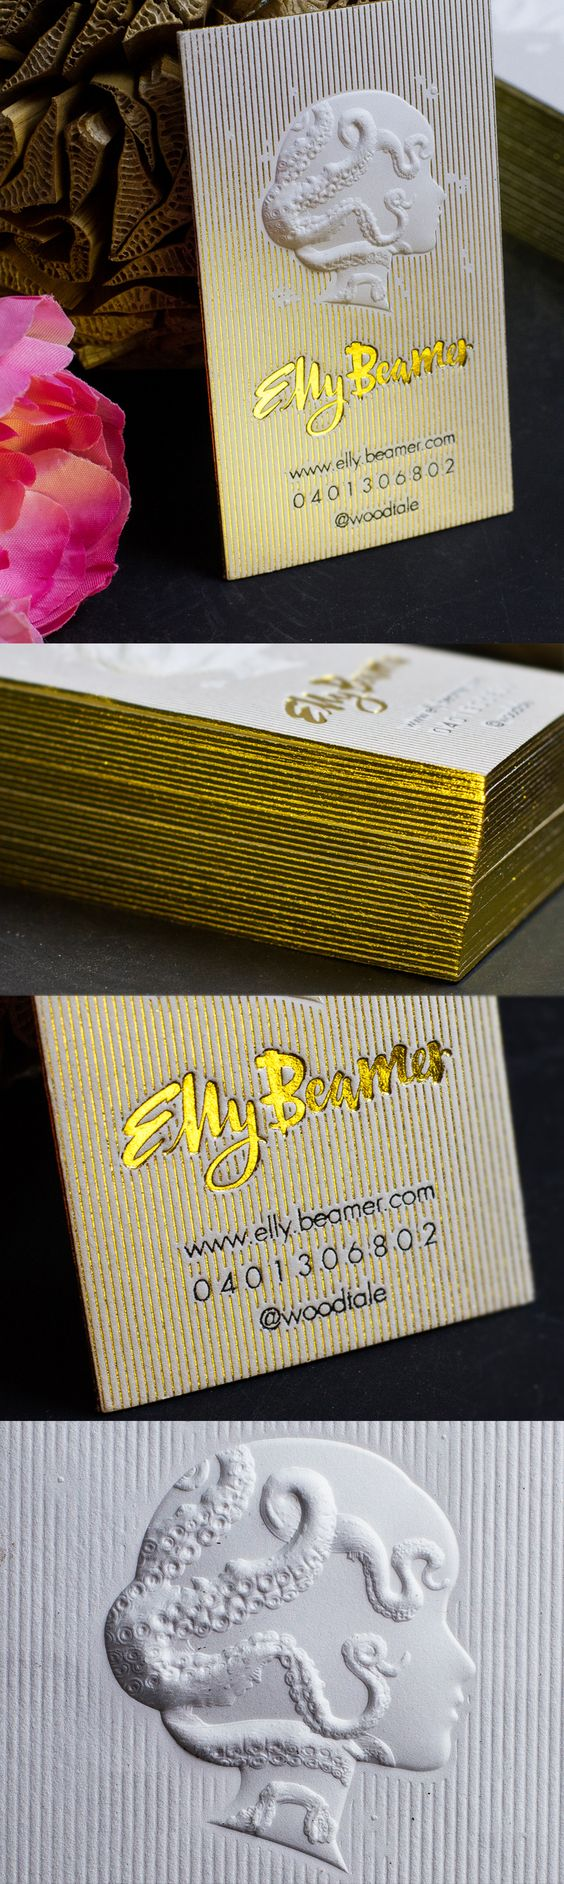 Stunning 3D Embossed Business Card with Gold Foil and Letterpress details. Design by the talented Elly Beamer of @woodtale. #jukeboxprint